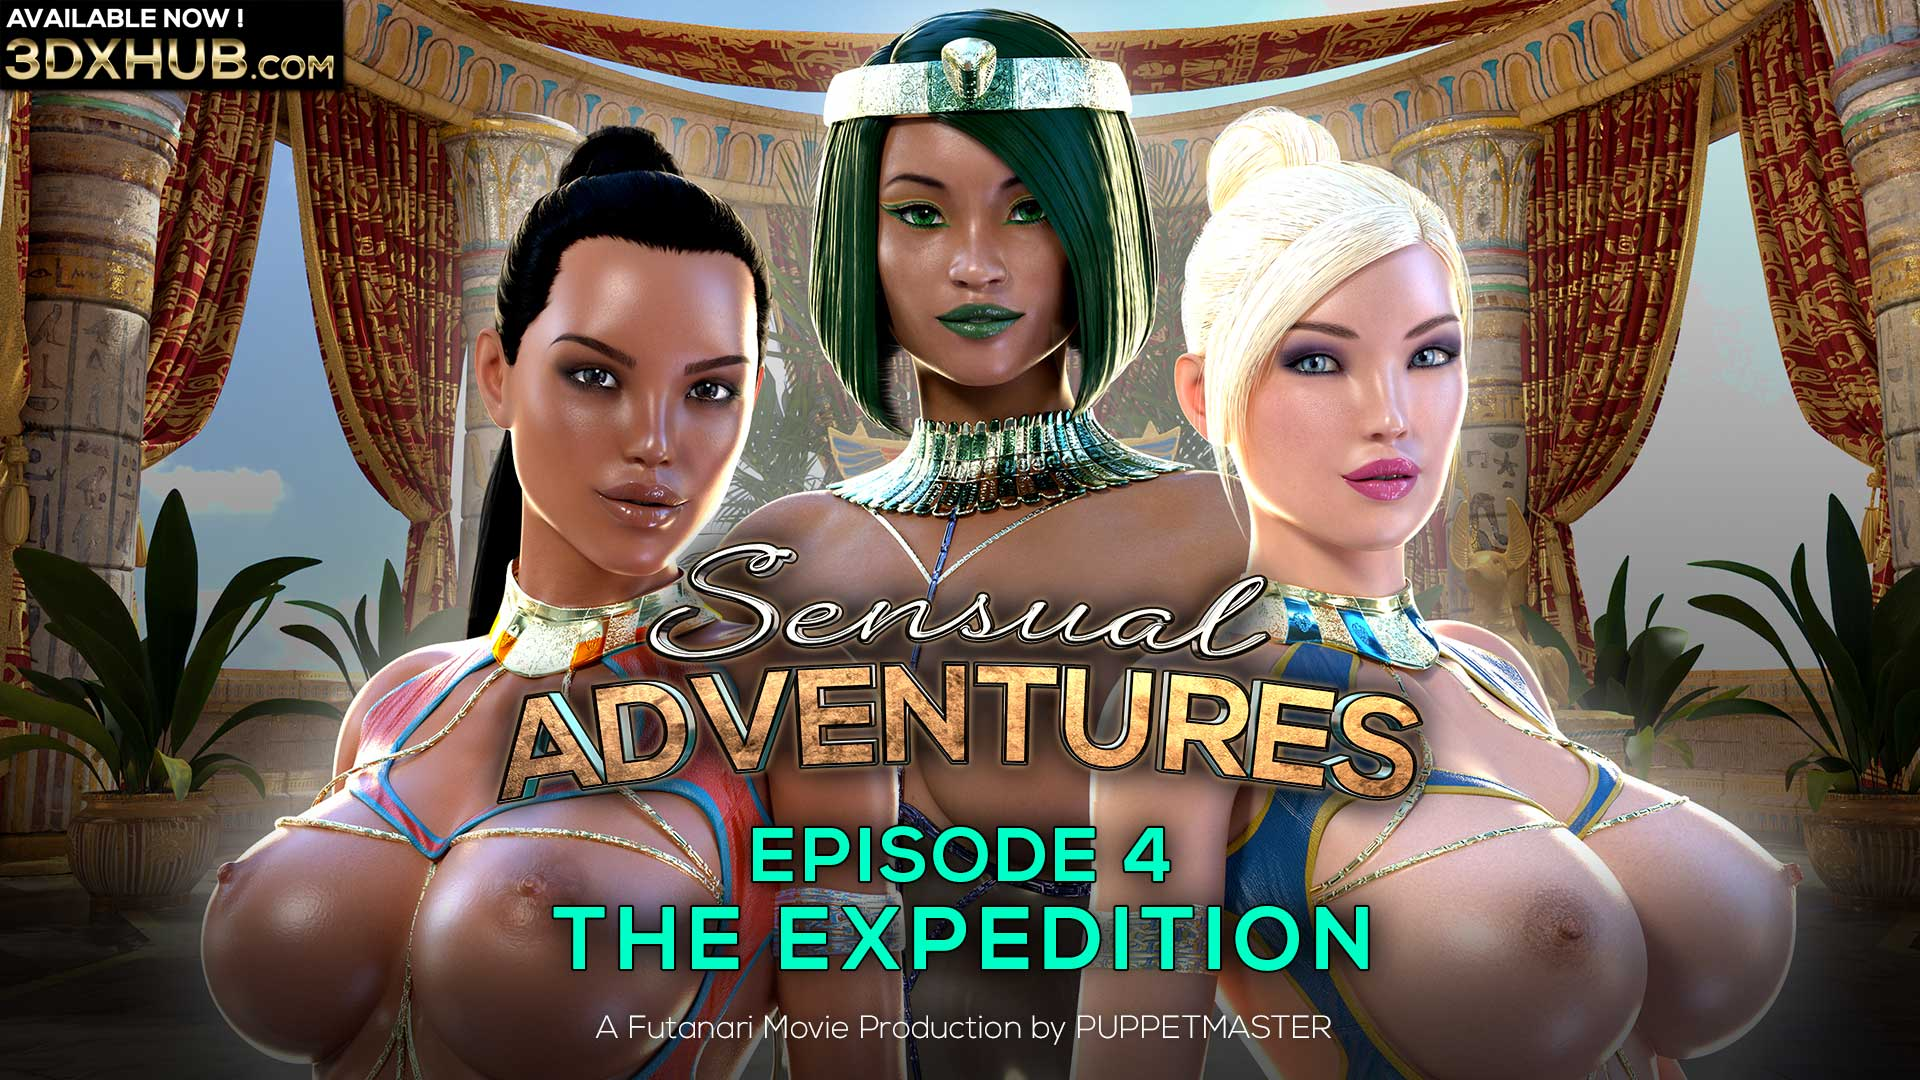 Sensual Adventures Episode 4 - The Expedition